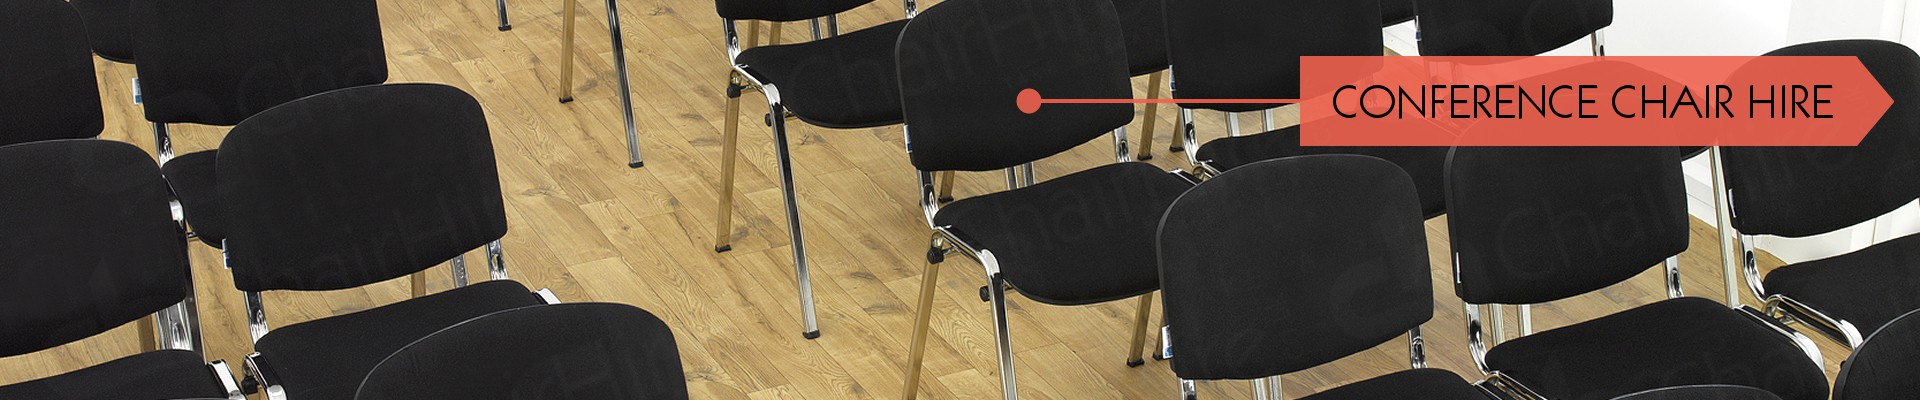 conference-chair-hire